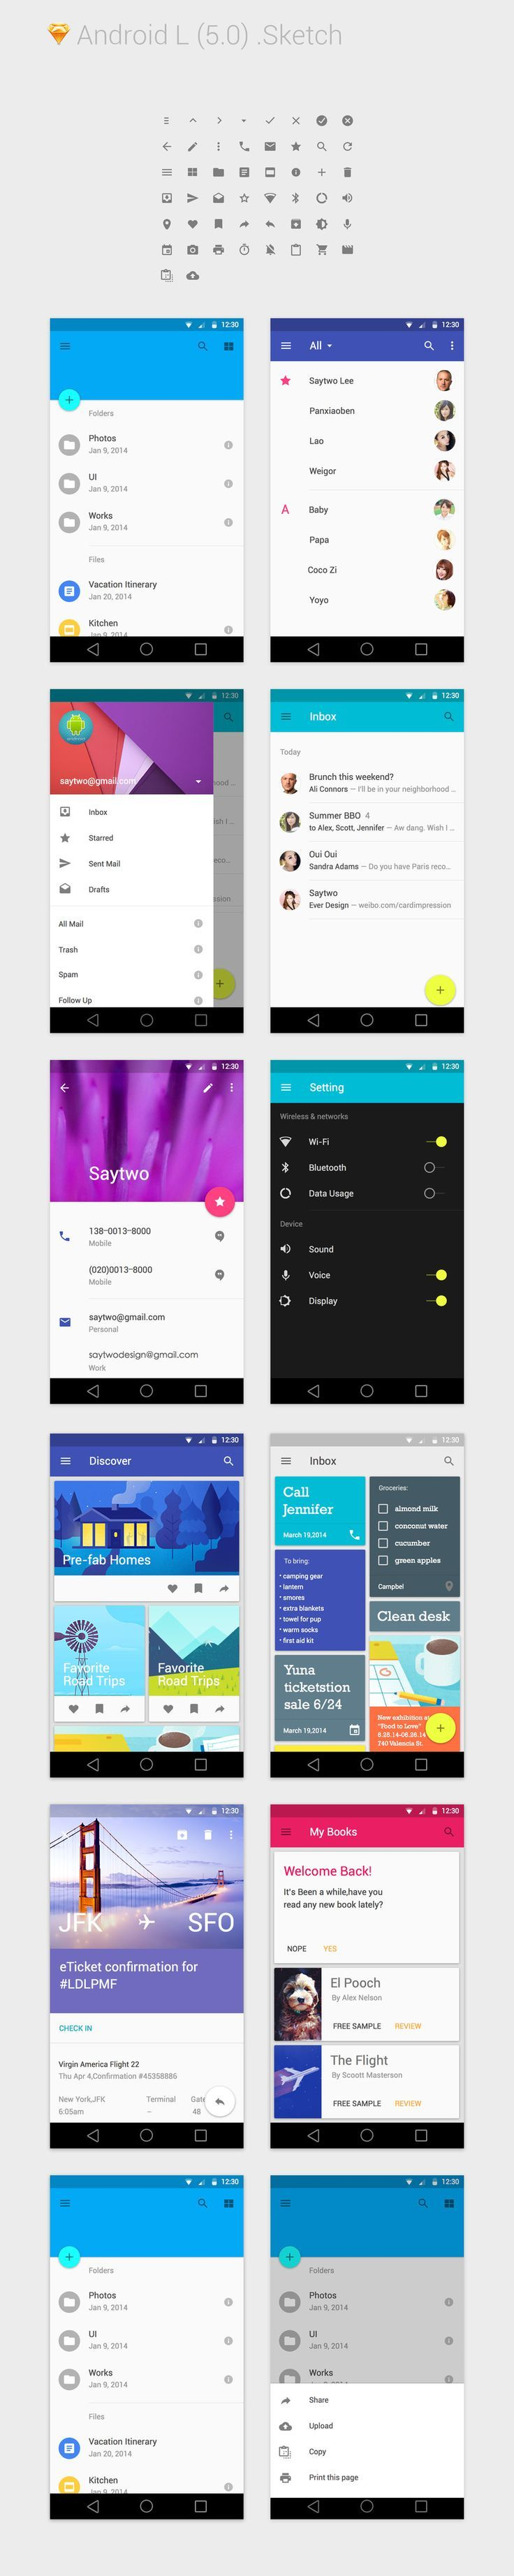 Android L for Sketch 3 #materialdesign #material #design: